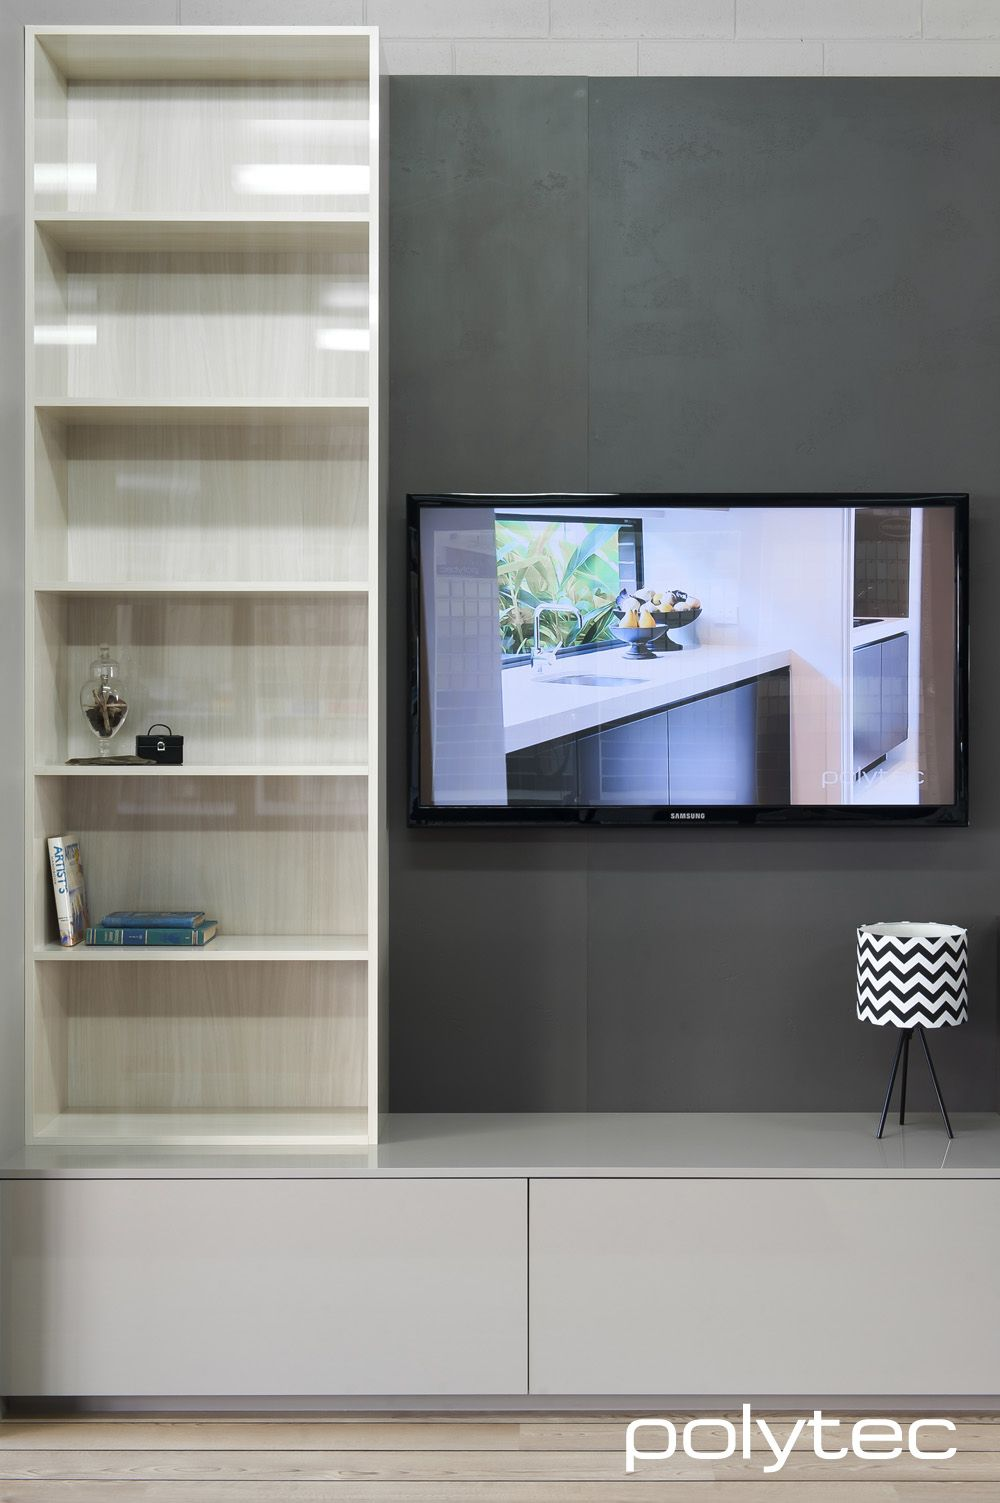 polytec shelving in createc bleached walnut media unit in createc stone grey wall panel in. Black Bedroom Furniture Sets. Home Design Ideas